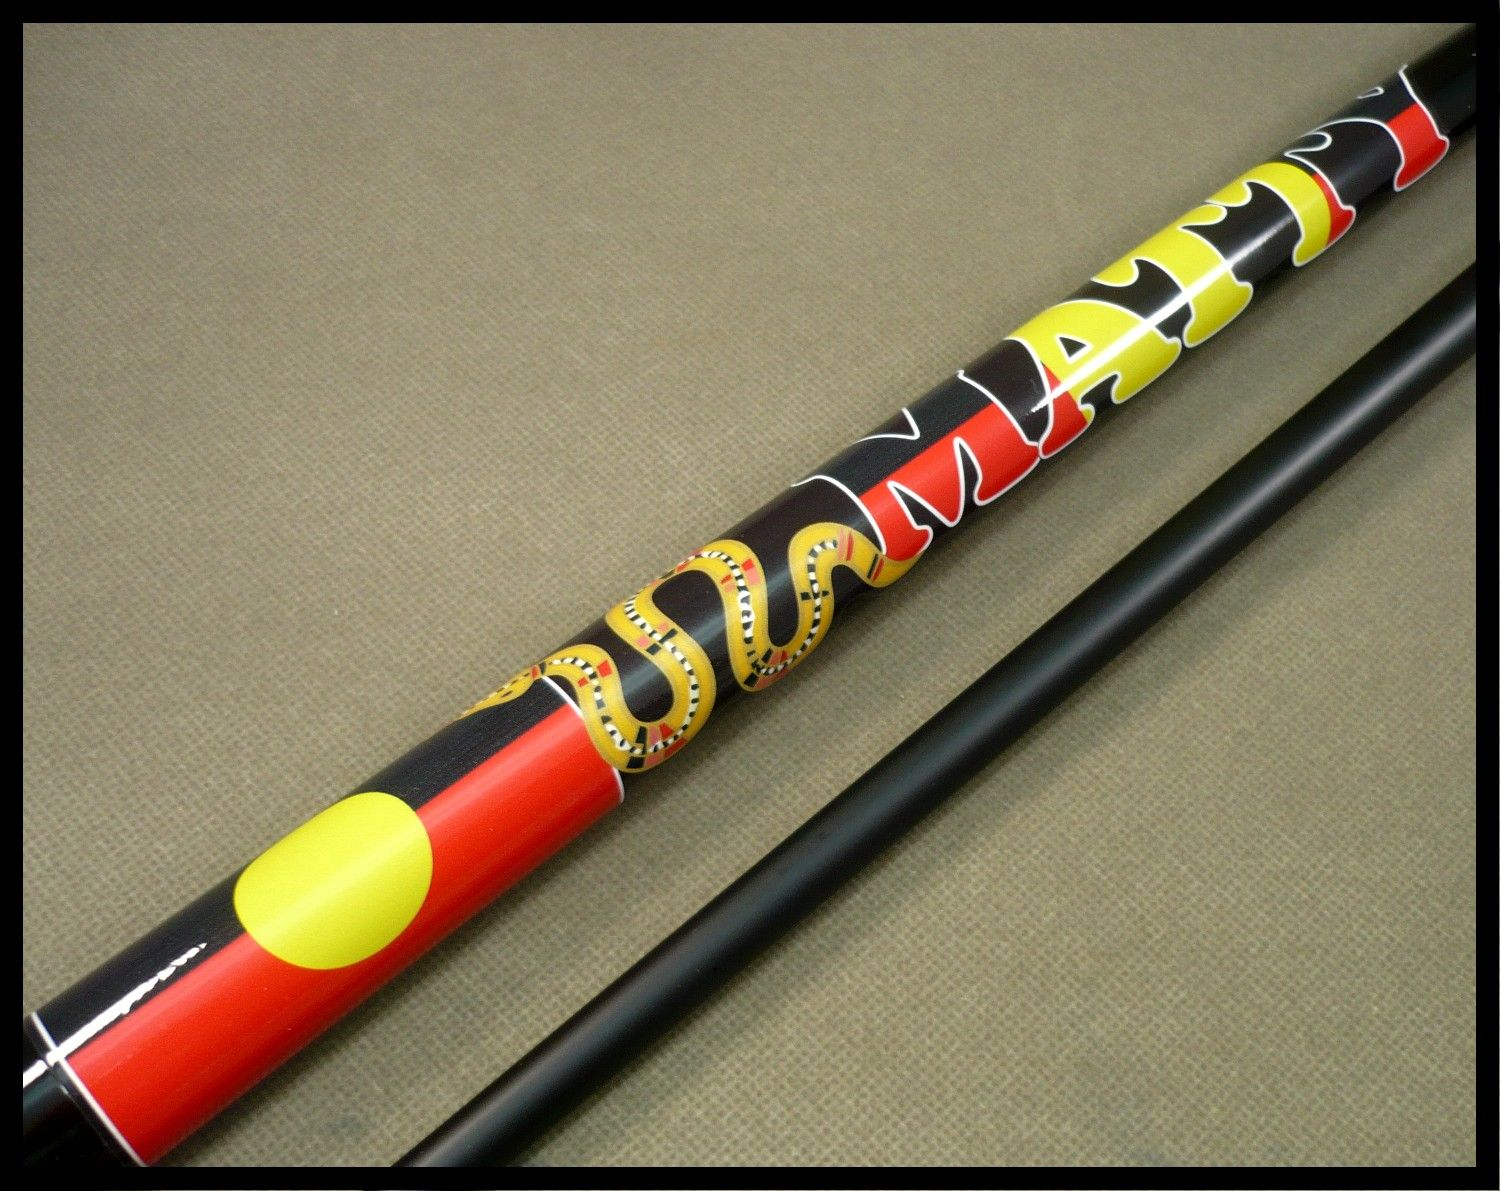 Another aboriginal cue Wed done this design before for Blocker